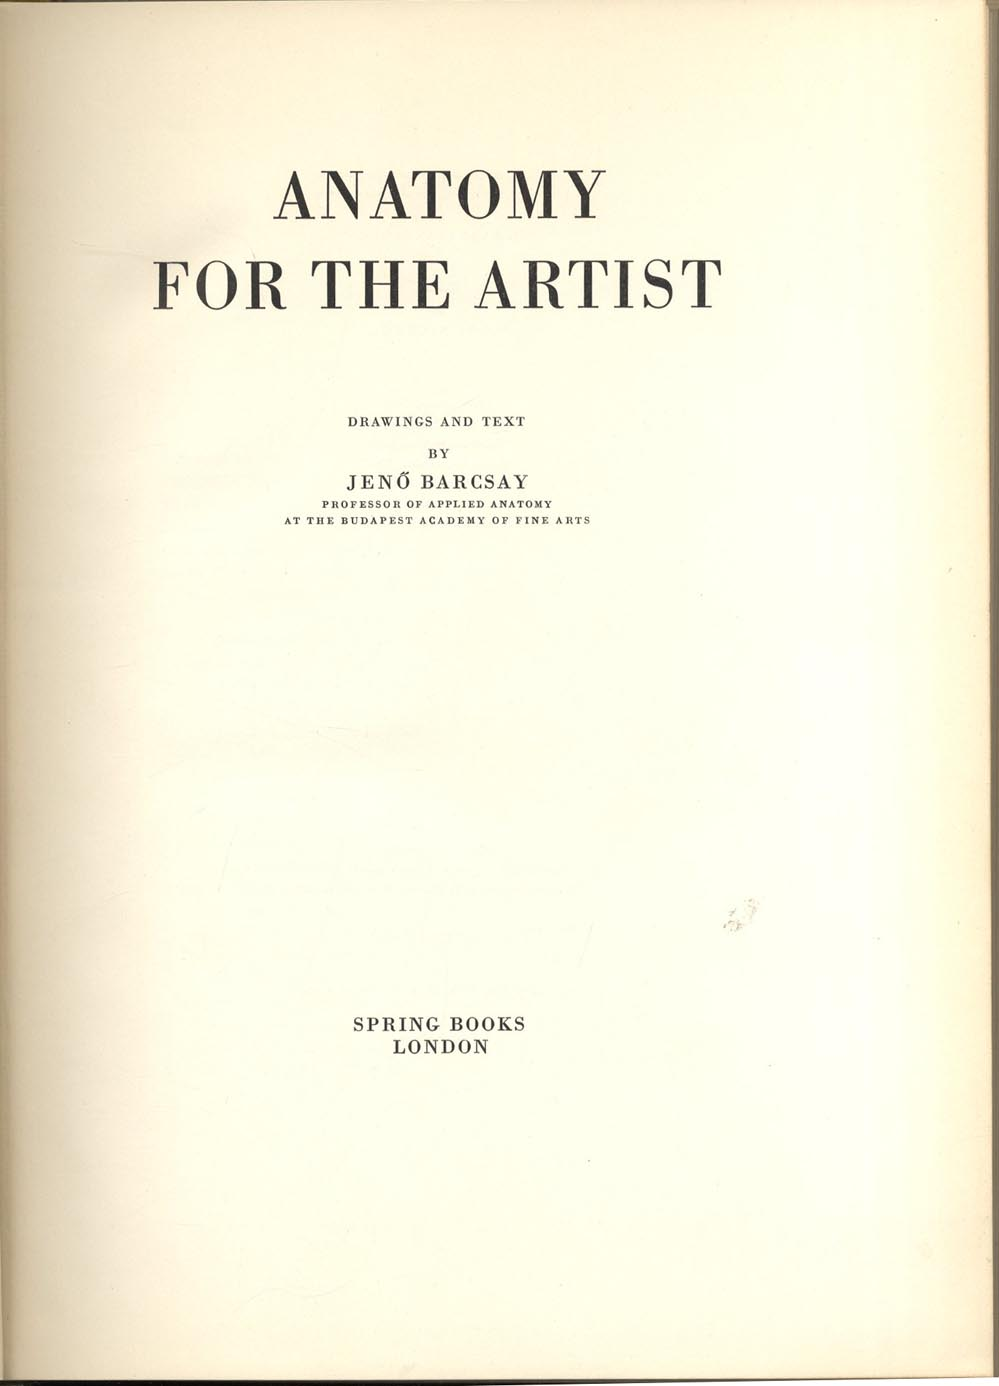 Artists\' Manuals, Jeno Barcsay, Anatomy for the Artist, 1968